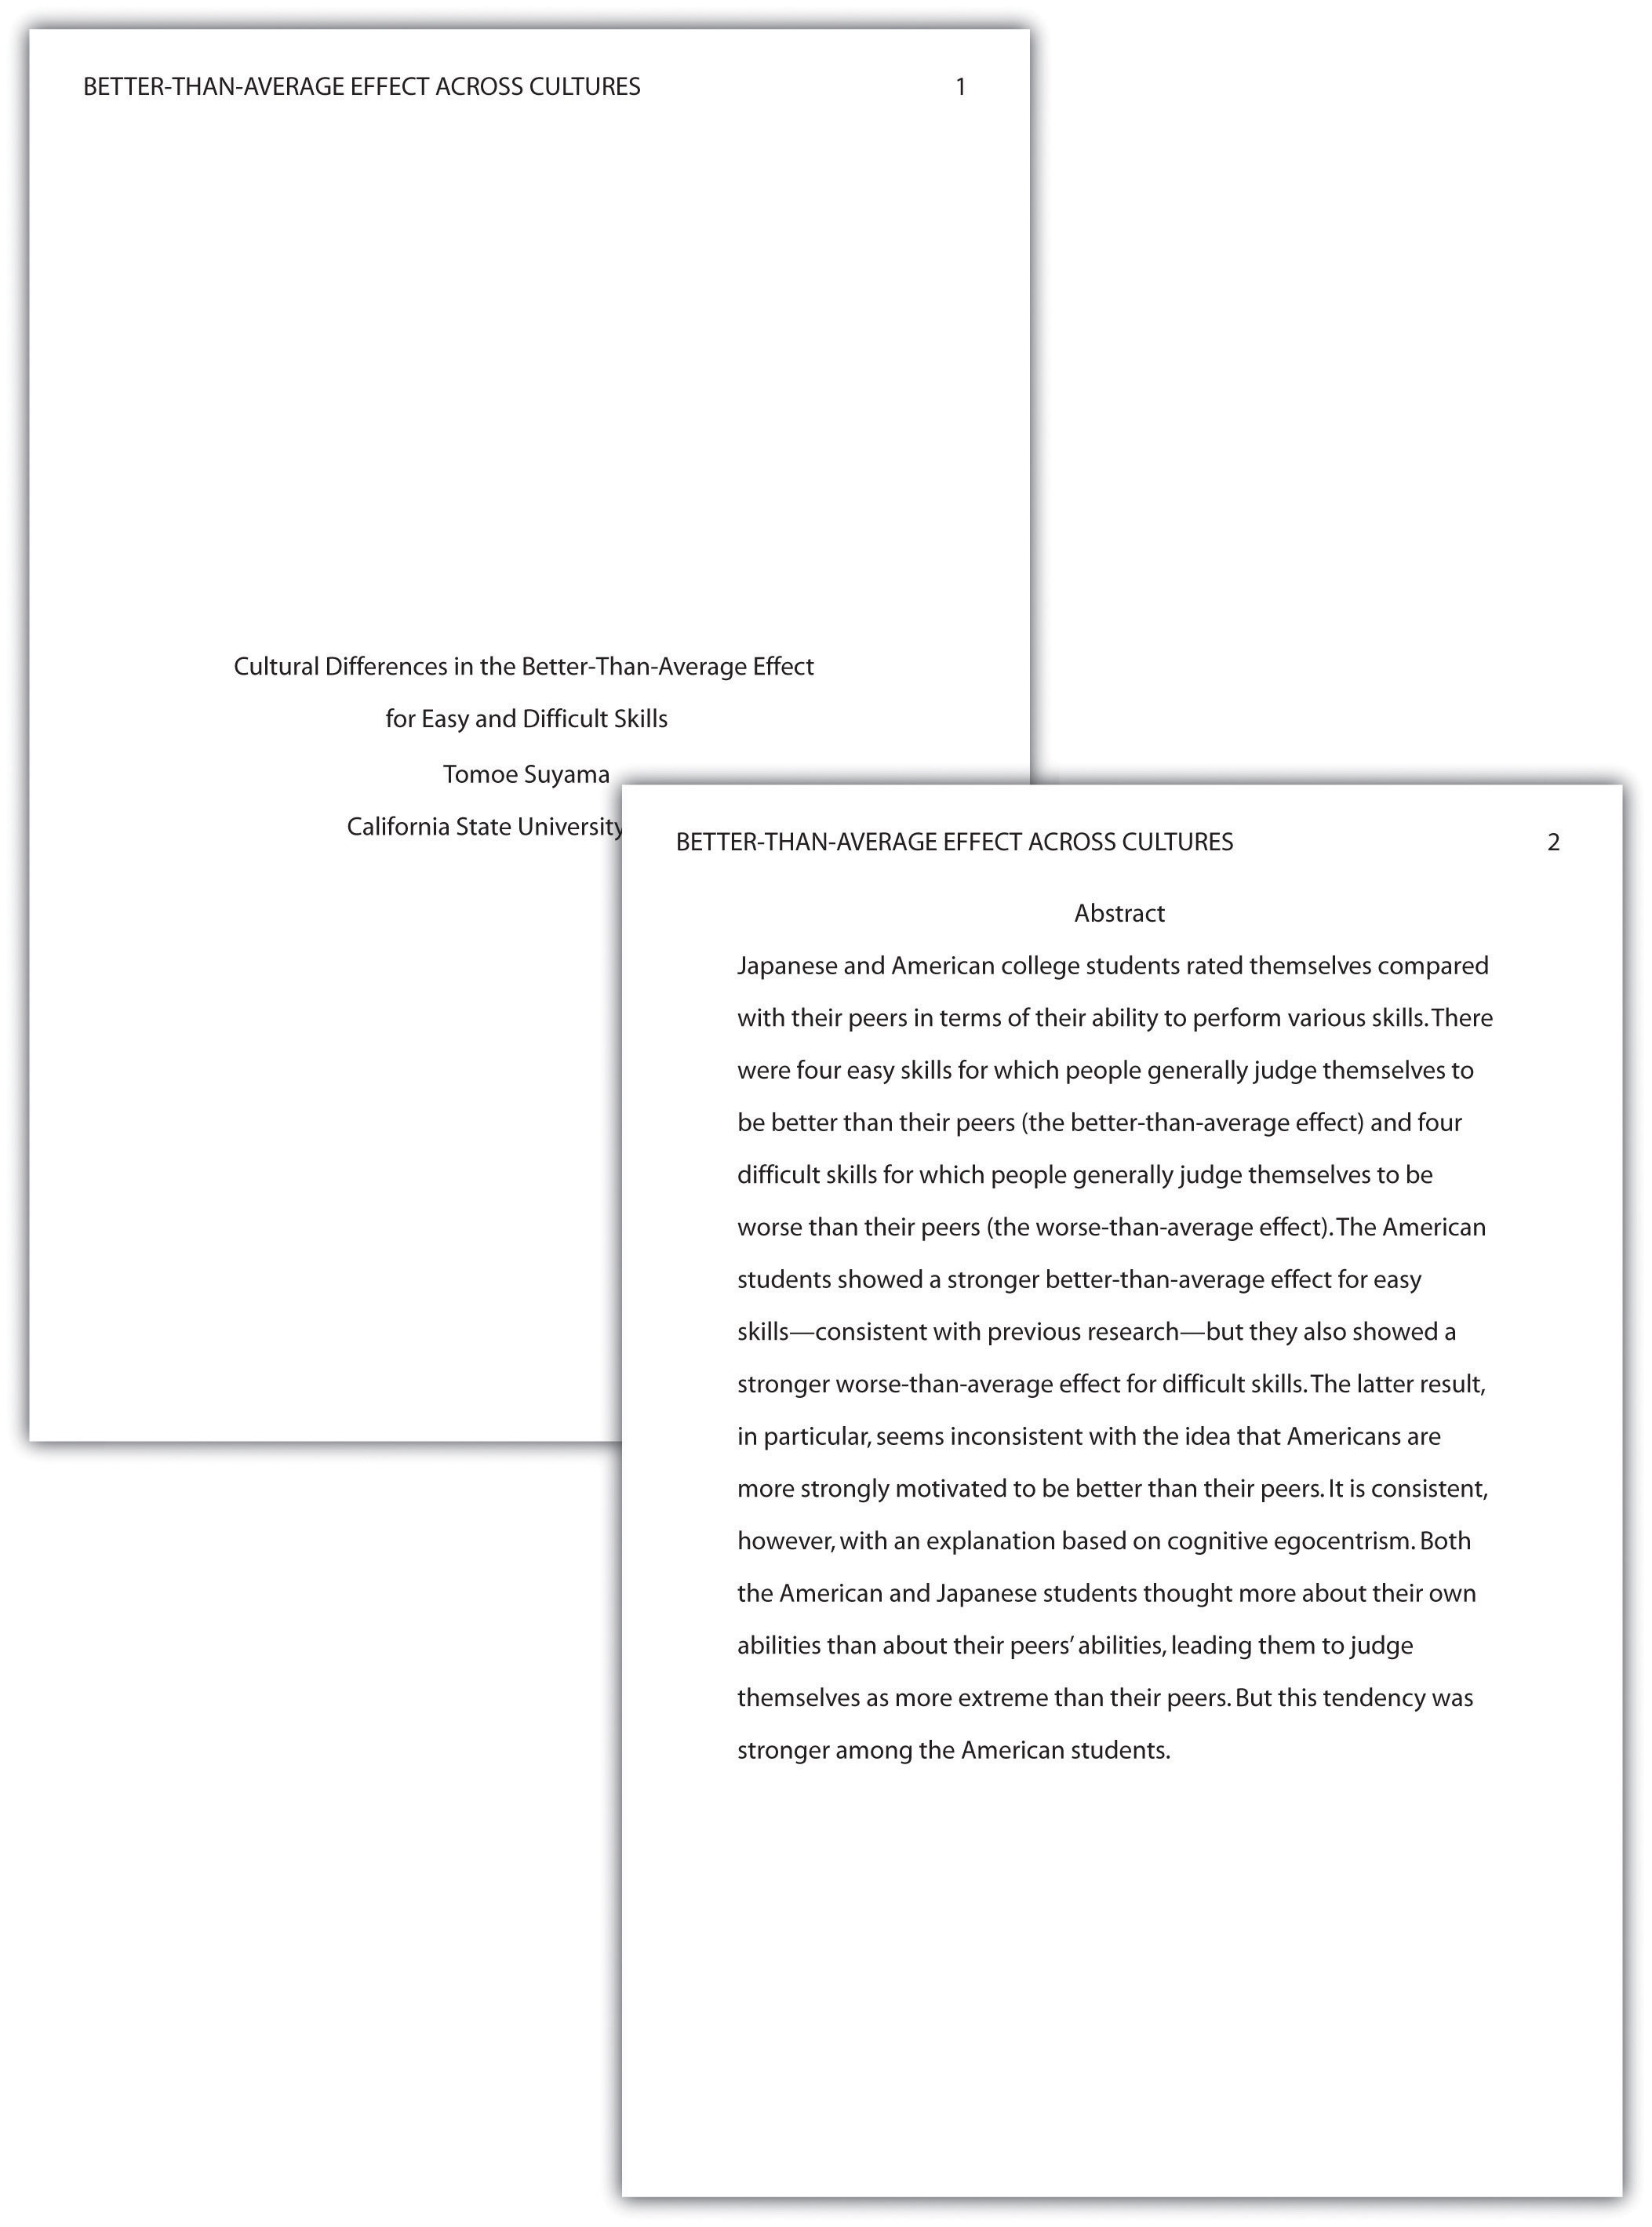 Abstract argumentative essay